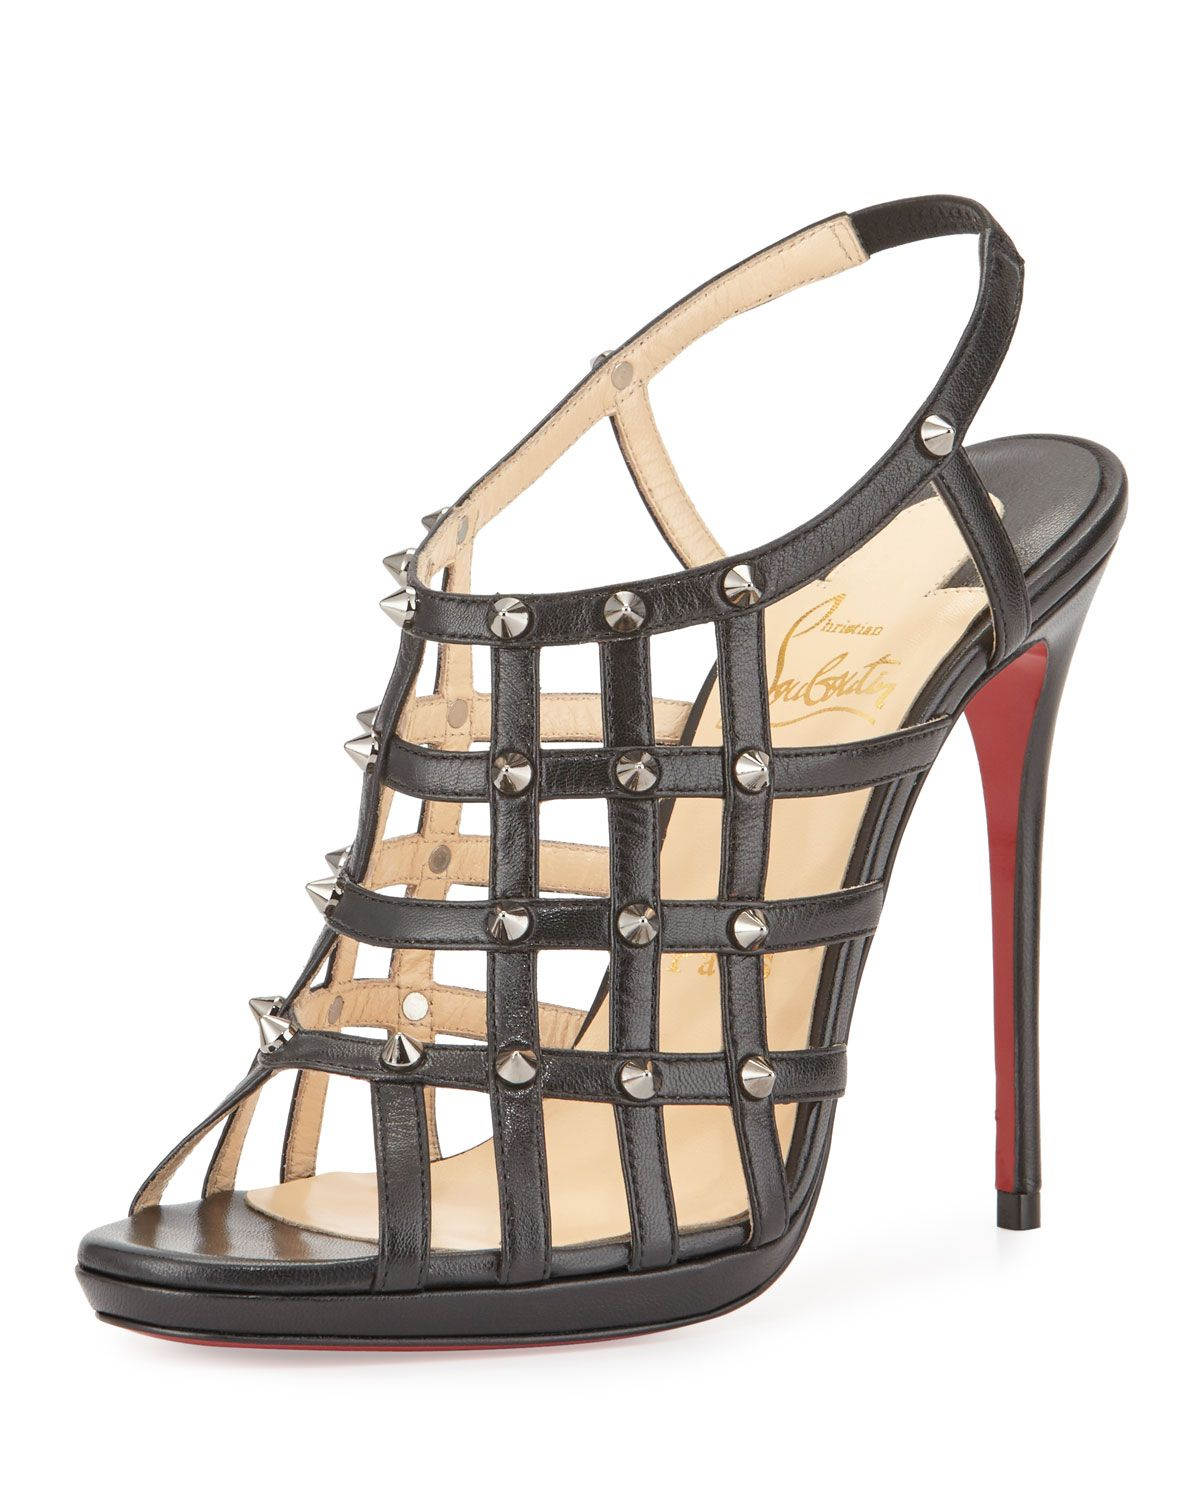 618164e94fb Guinievre caged leather red sole sandal black gunmetal christian louboutin  at neiman marcus jpg 1200x1500 Caged